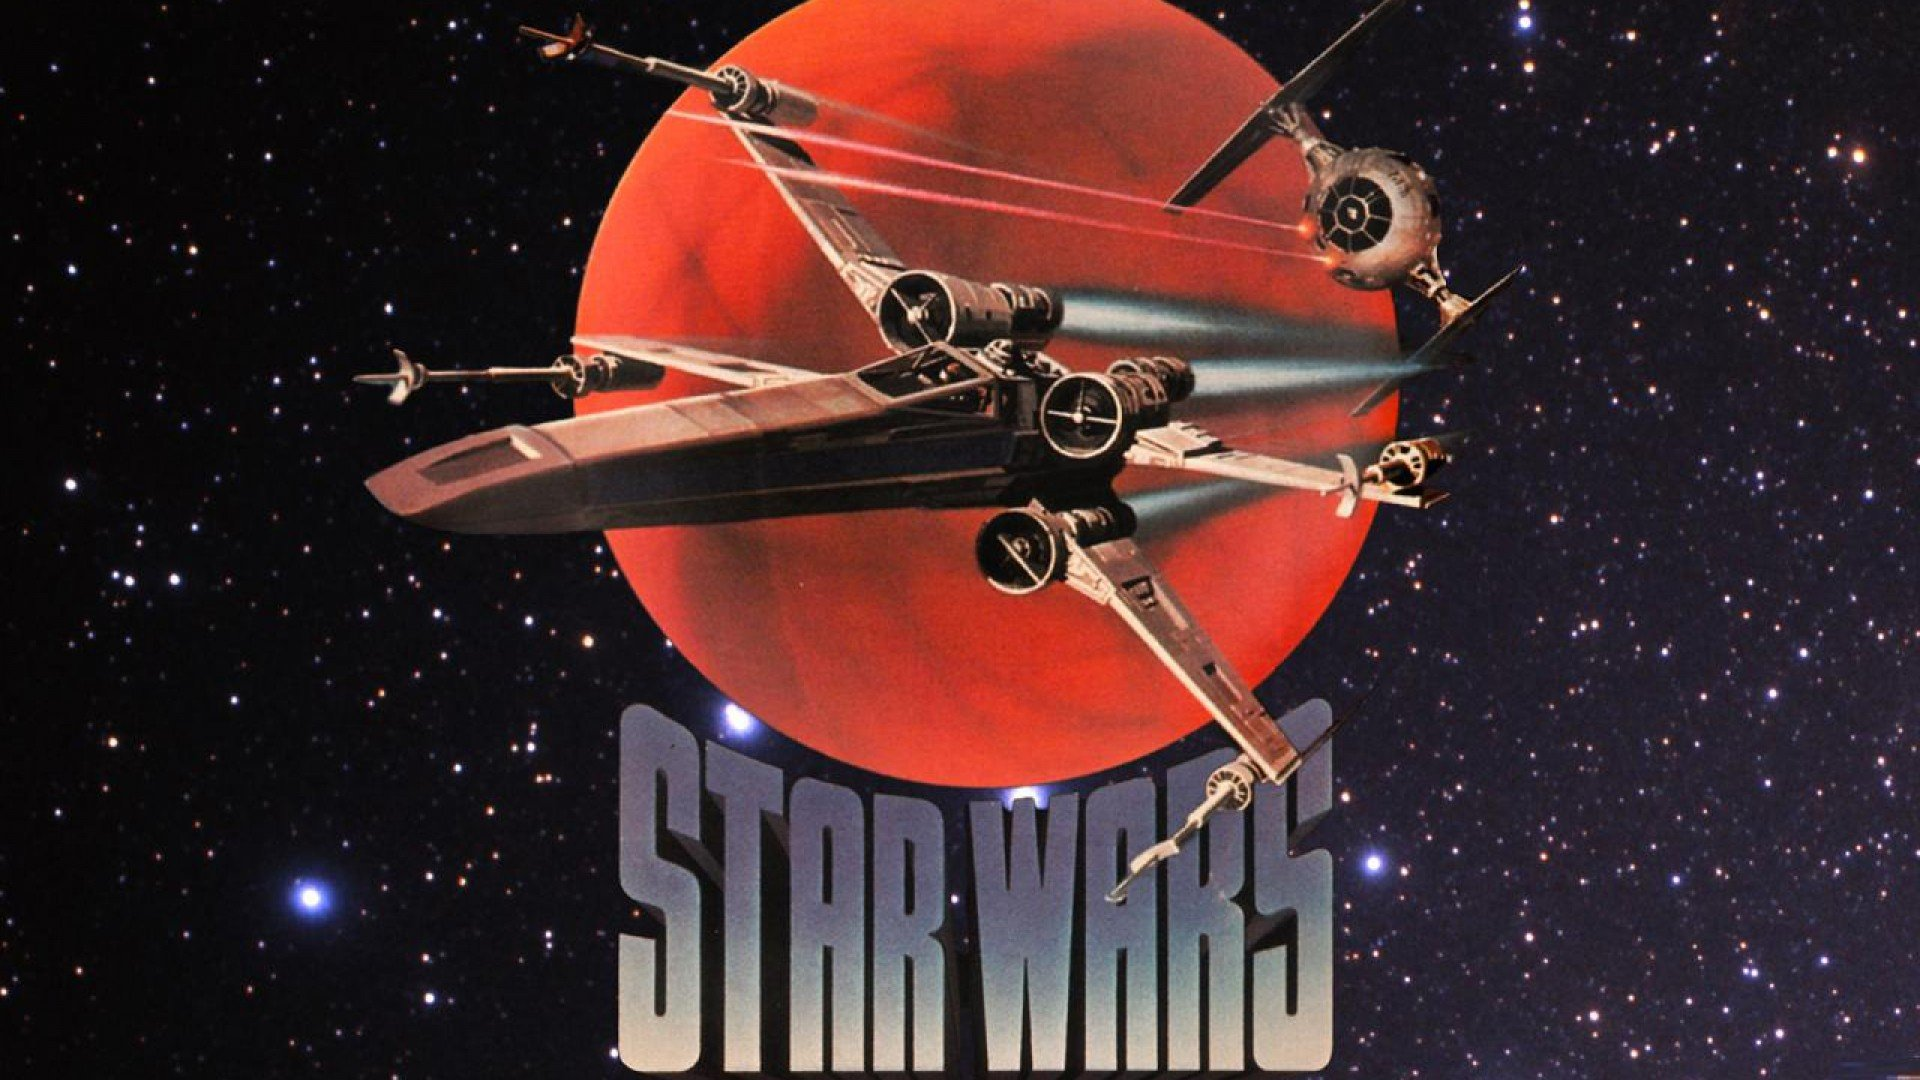 Star Wars outer space X Wing Tie Fighter wallpaper 1920x1080 1920x1080